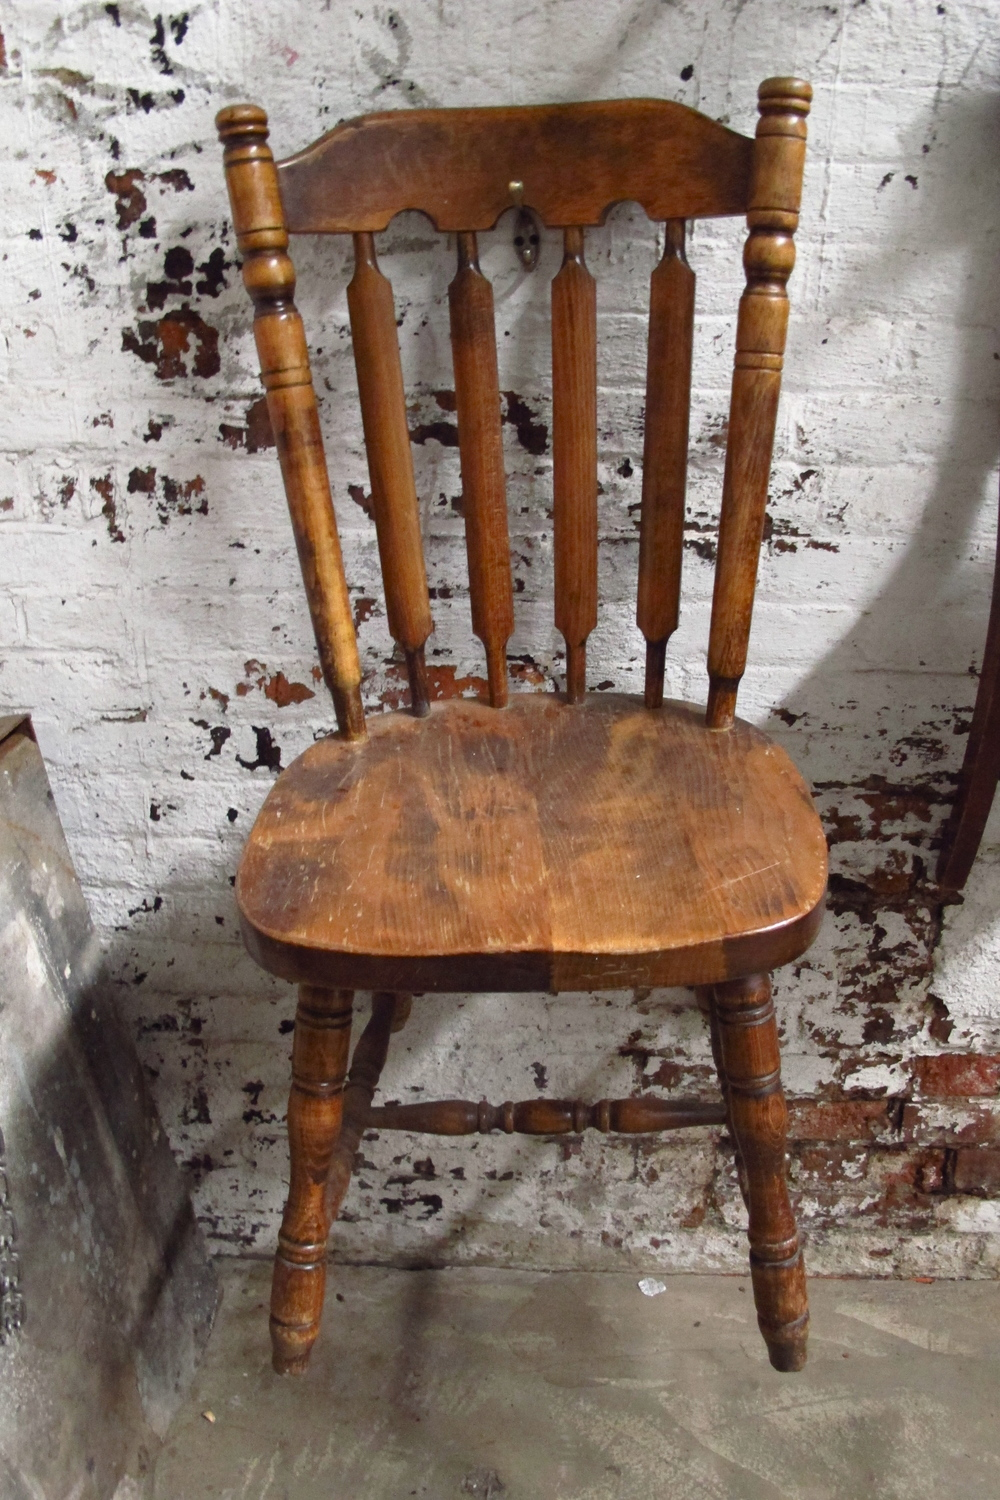 Wood 'Fancy' Kitchen Chair $30